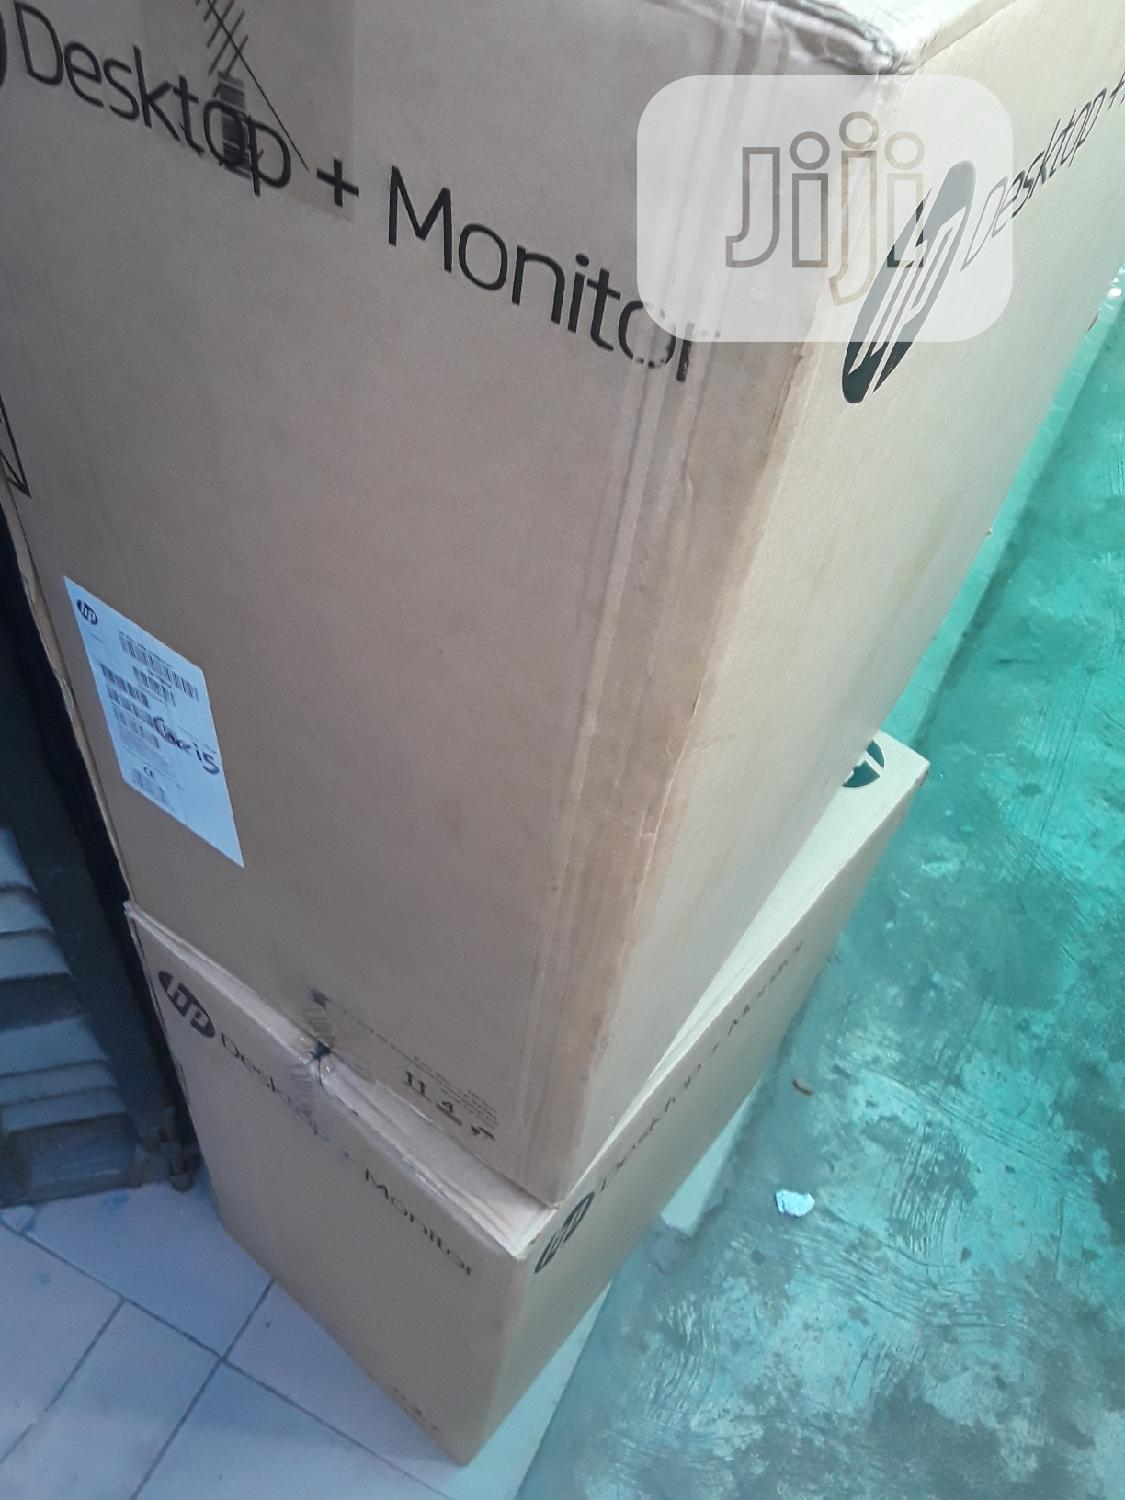 New Desktop Computer HP 12GB Intel Core i5 HDD 1T | Laptops & Computers for sale in Ikoyi, Lagos State, Nigeria